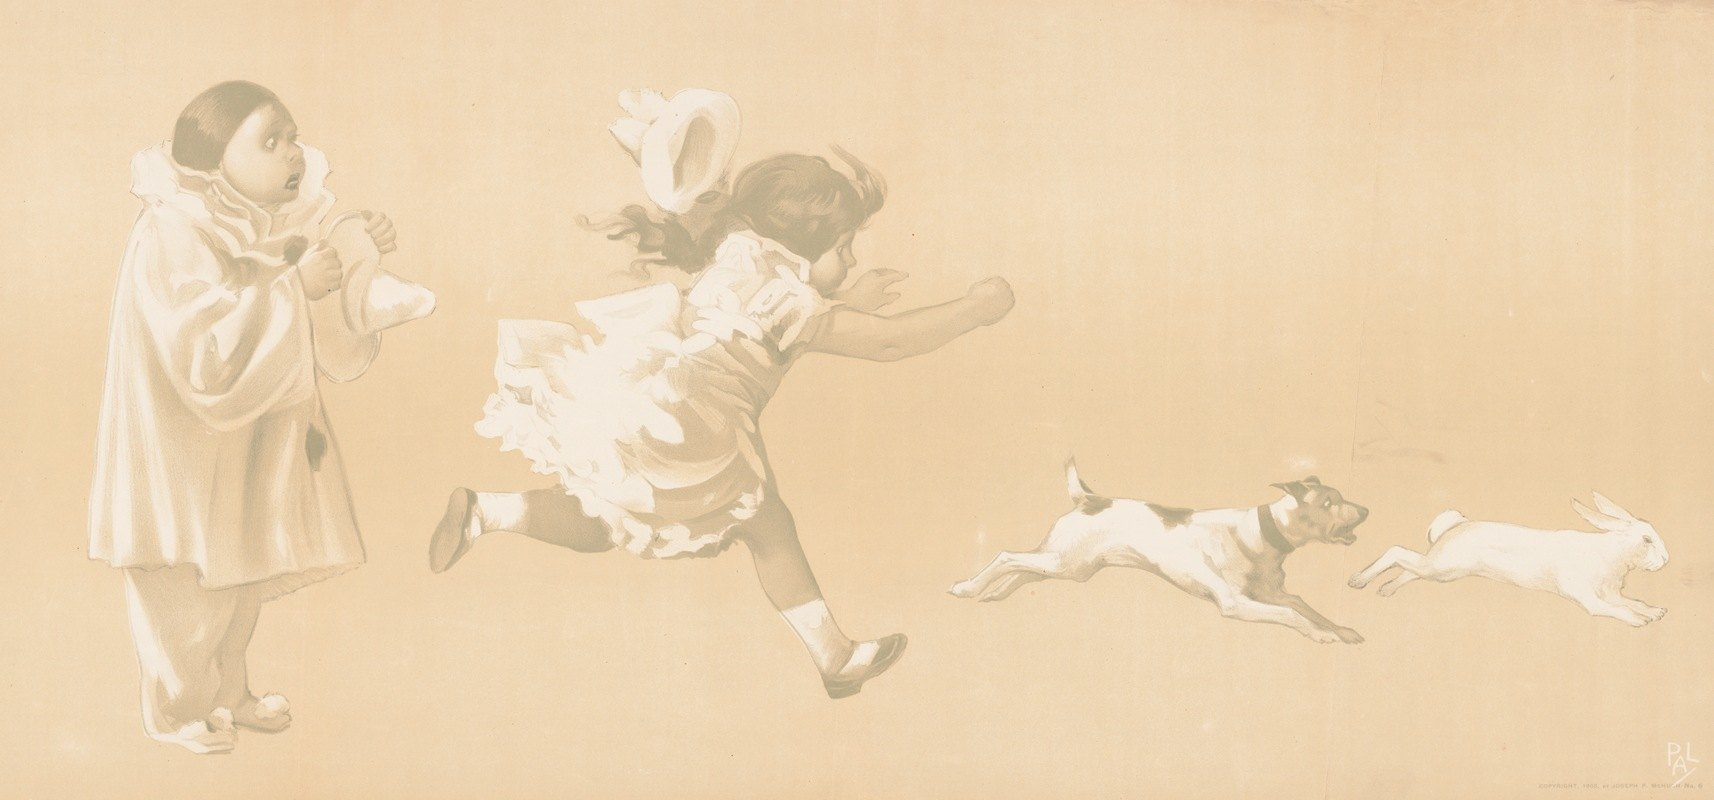 Jean de Paleologue - Girl chasing a dog who is chasing a rabbit while a clown looks on